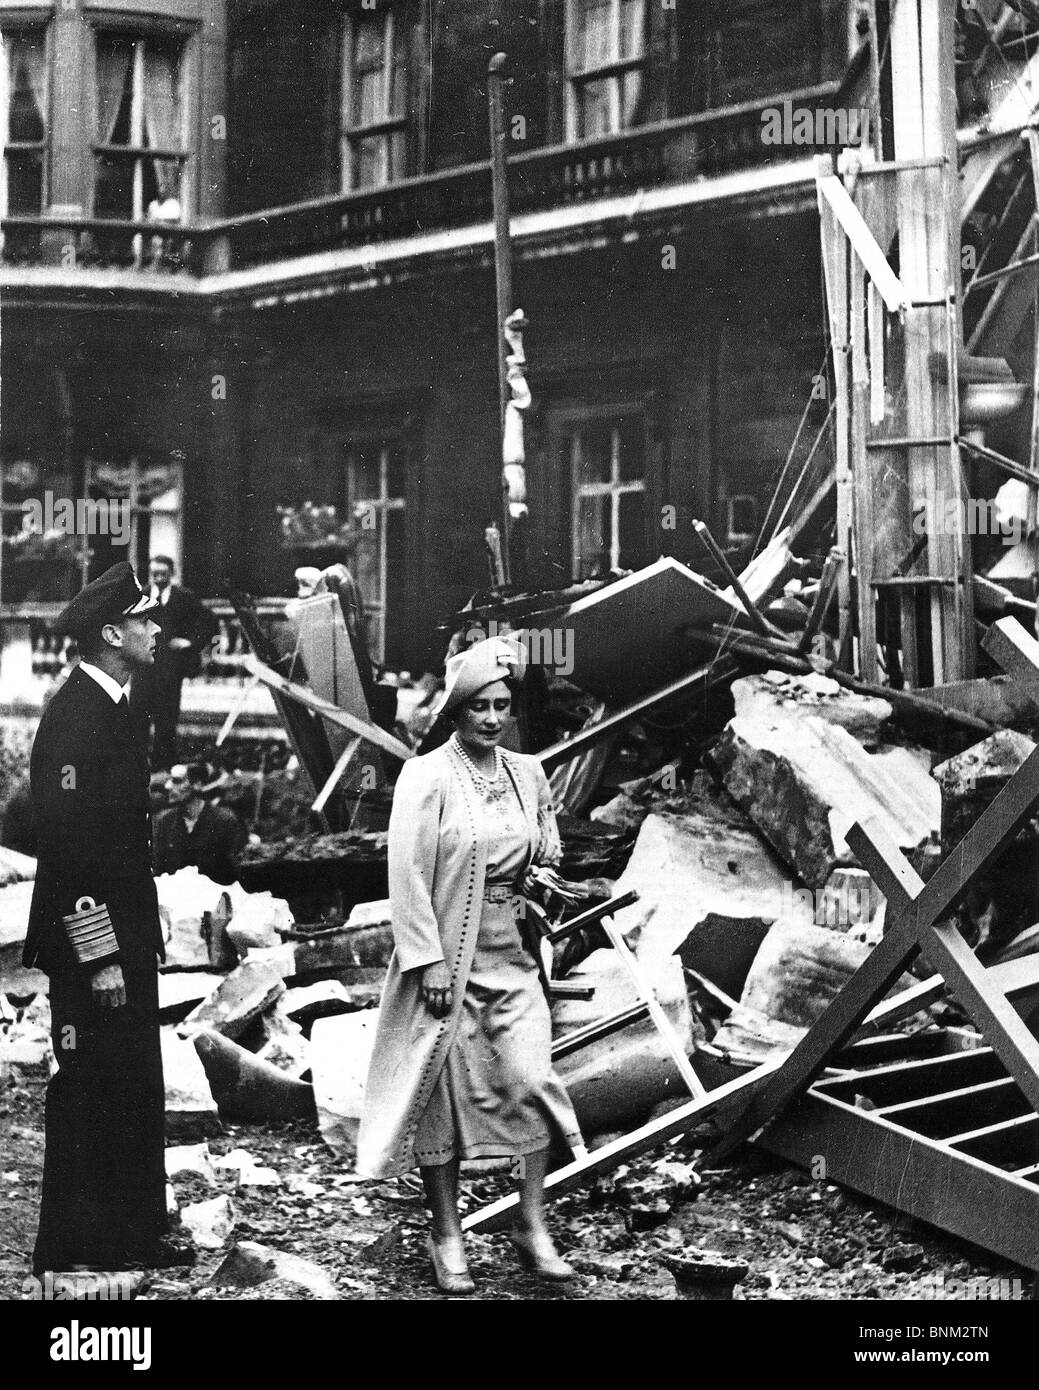 KING GEORGE VI and Queen Elizabeth after the bombing of Buckingham Palace on 13 September 1940 - Stock Image